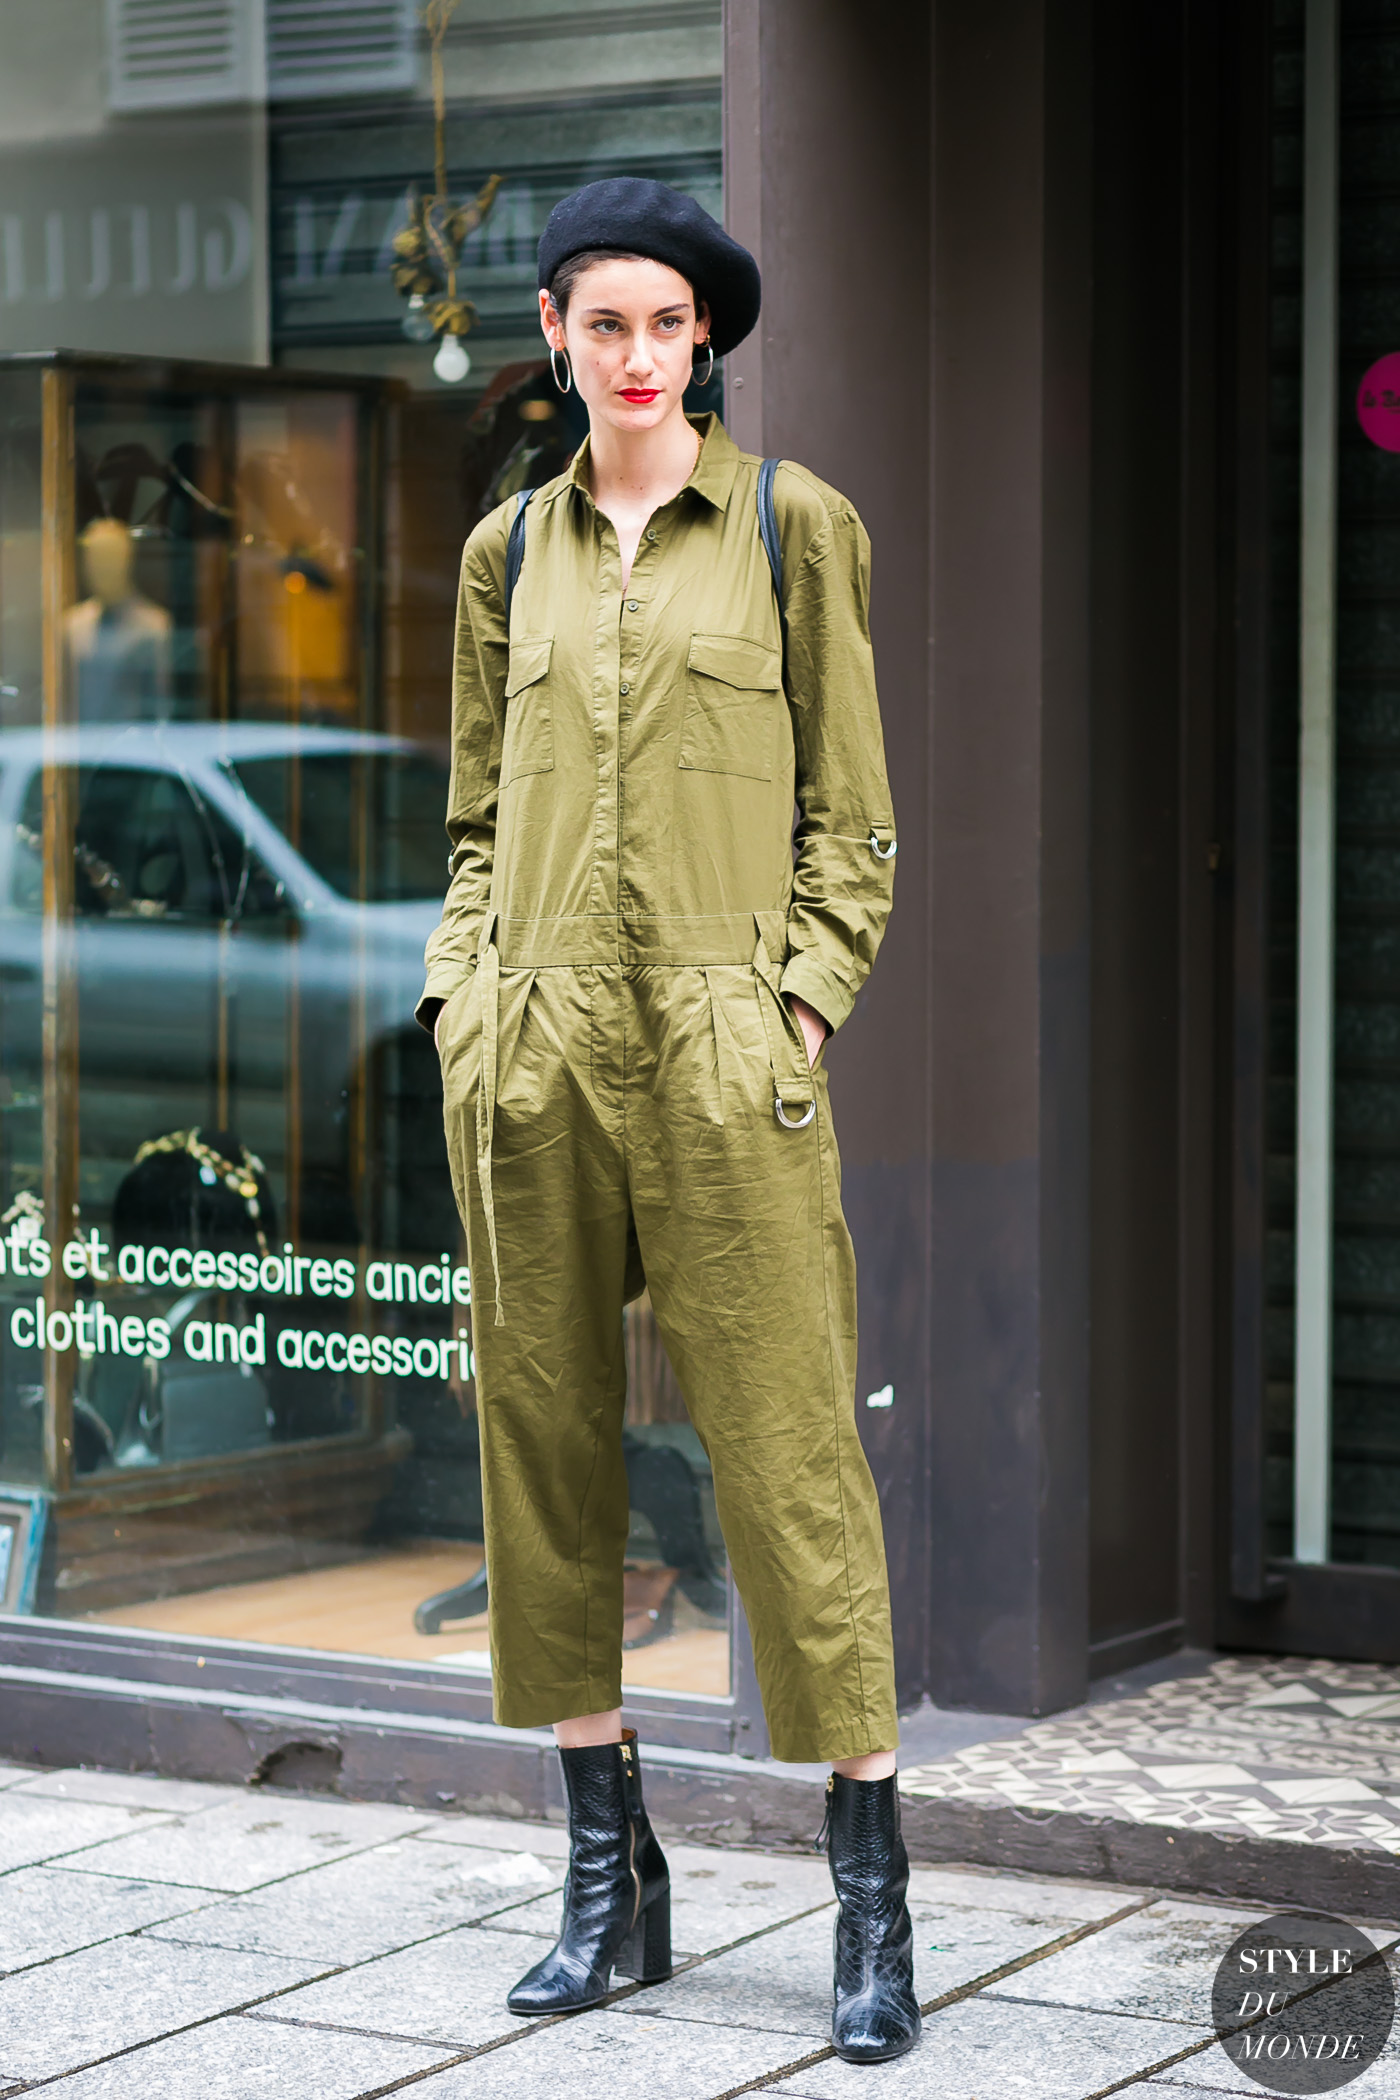 1f438298f91cf Haute Couture Fall / Winter 2017/18 Street Style: Sarah Boursin. Before  A.F.Vandevorst by STYLEDUMONDE Street Style Fashion Photography0E2A3843